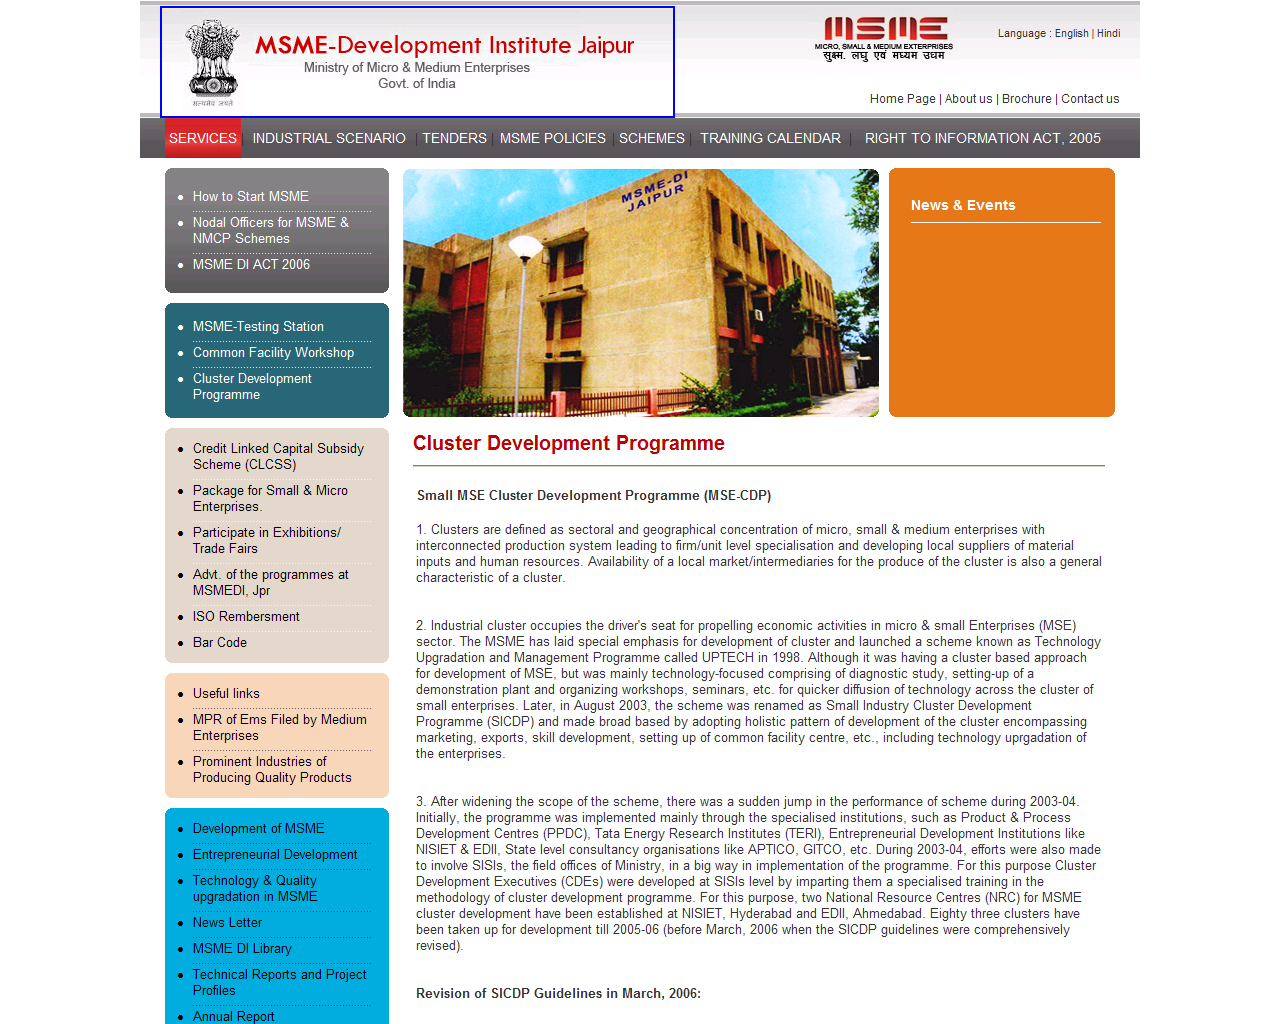 Indian_Government_Web_Site_Hacked_Compromised_Black_Hole_Exploit_Kit_01